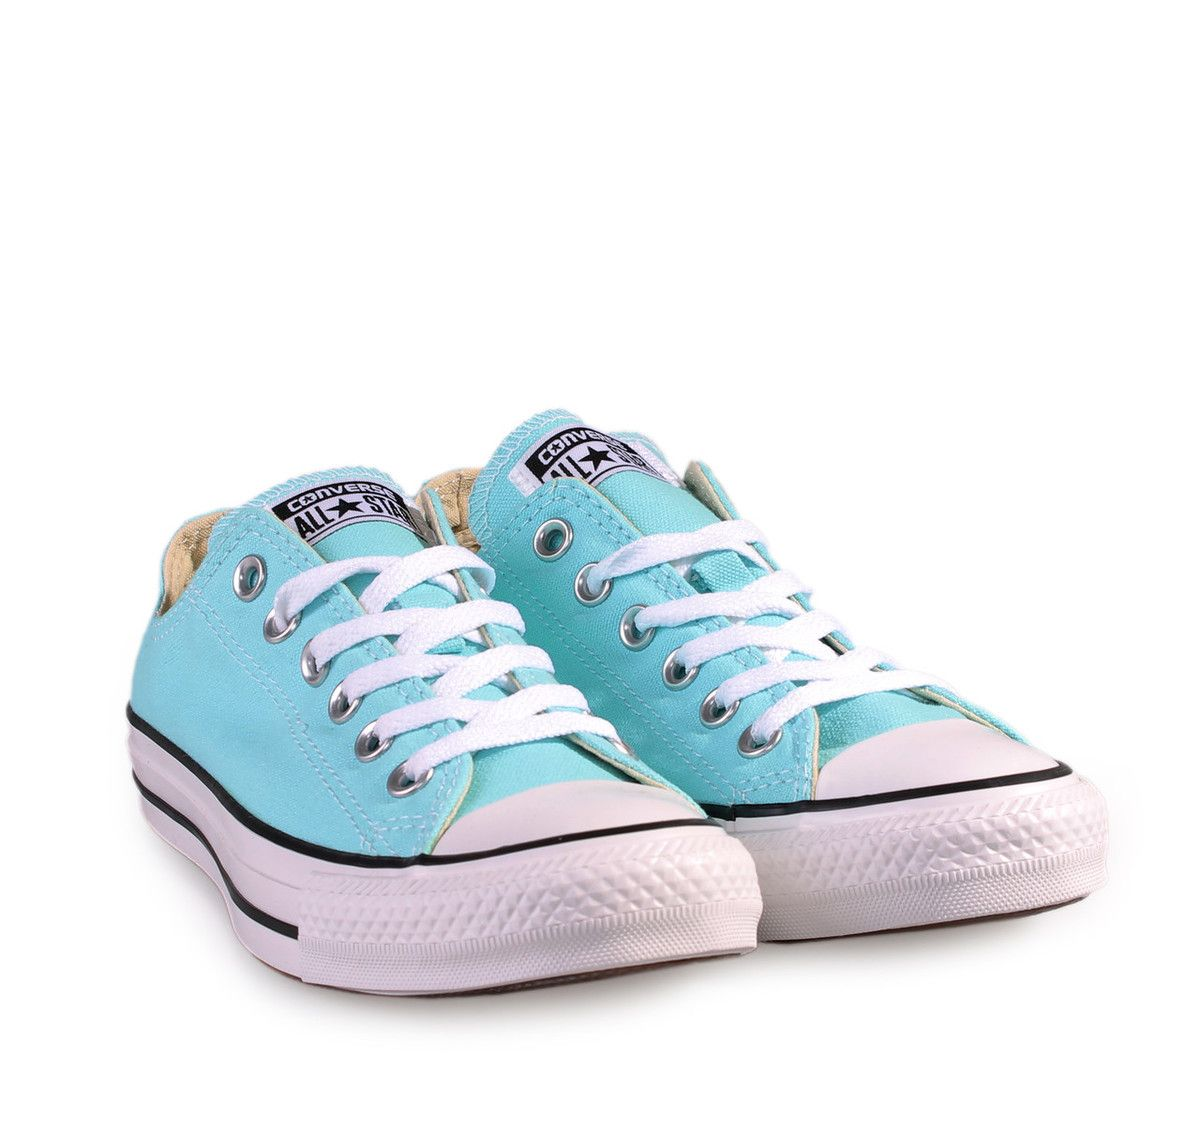 separation shoes f0e56 f1a53 FROZEN Blue Silver Girly High-cut Sneakers with Laces. Παιδικά μπλε ασημί  μποτάκια για κορίτσια με κορδόνια.   Girl s Fashion Inspiration   High Top  ...